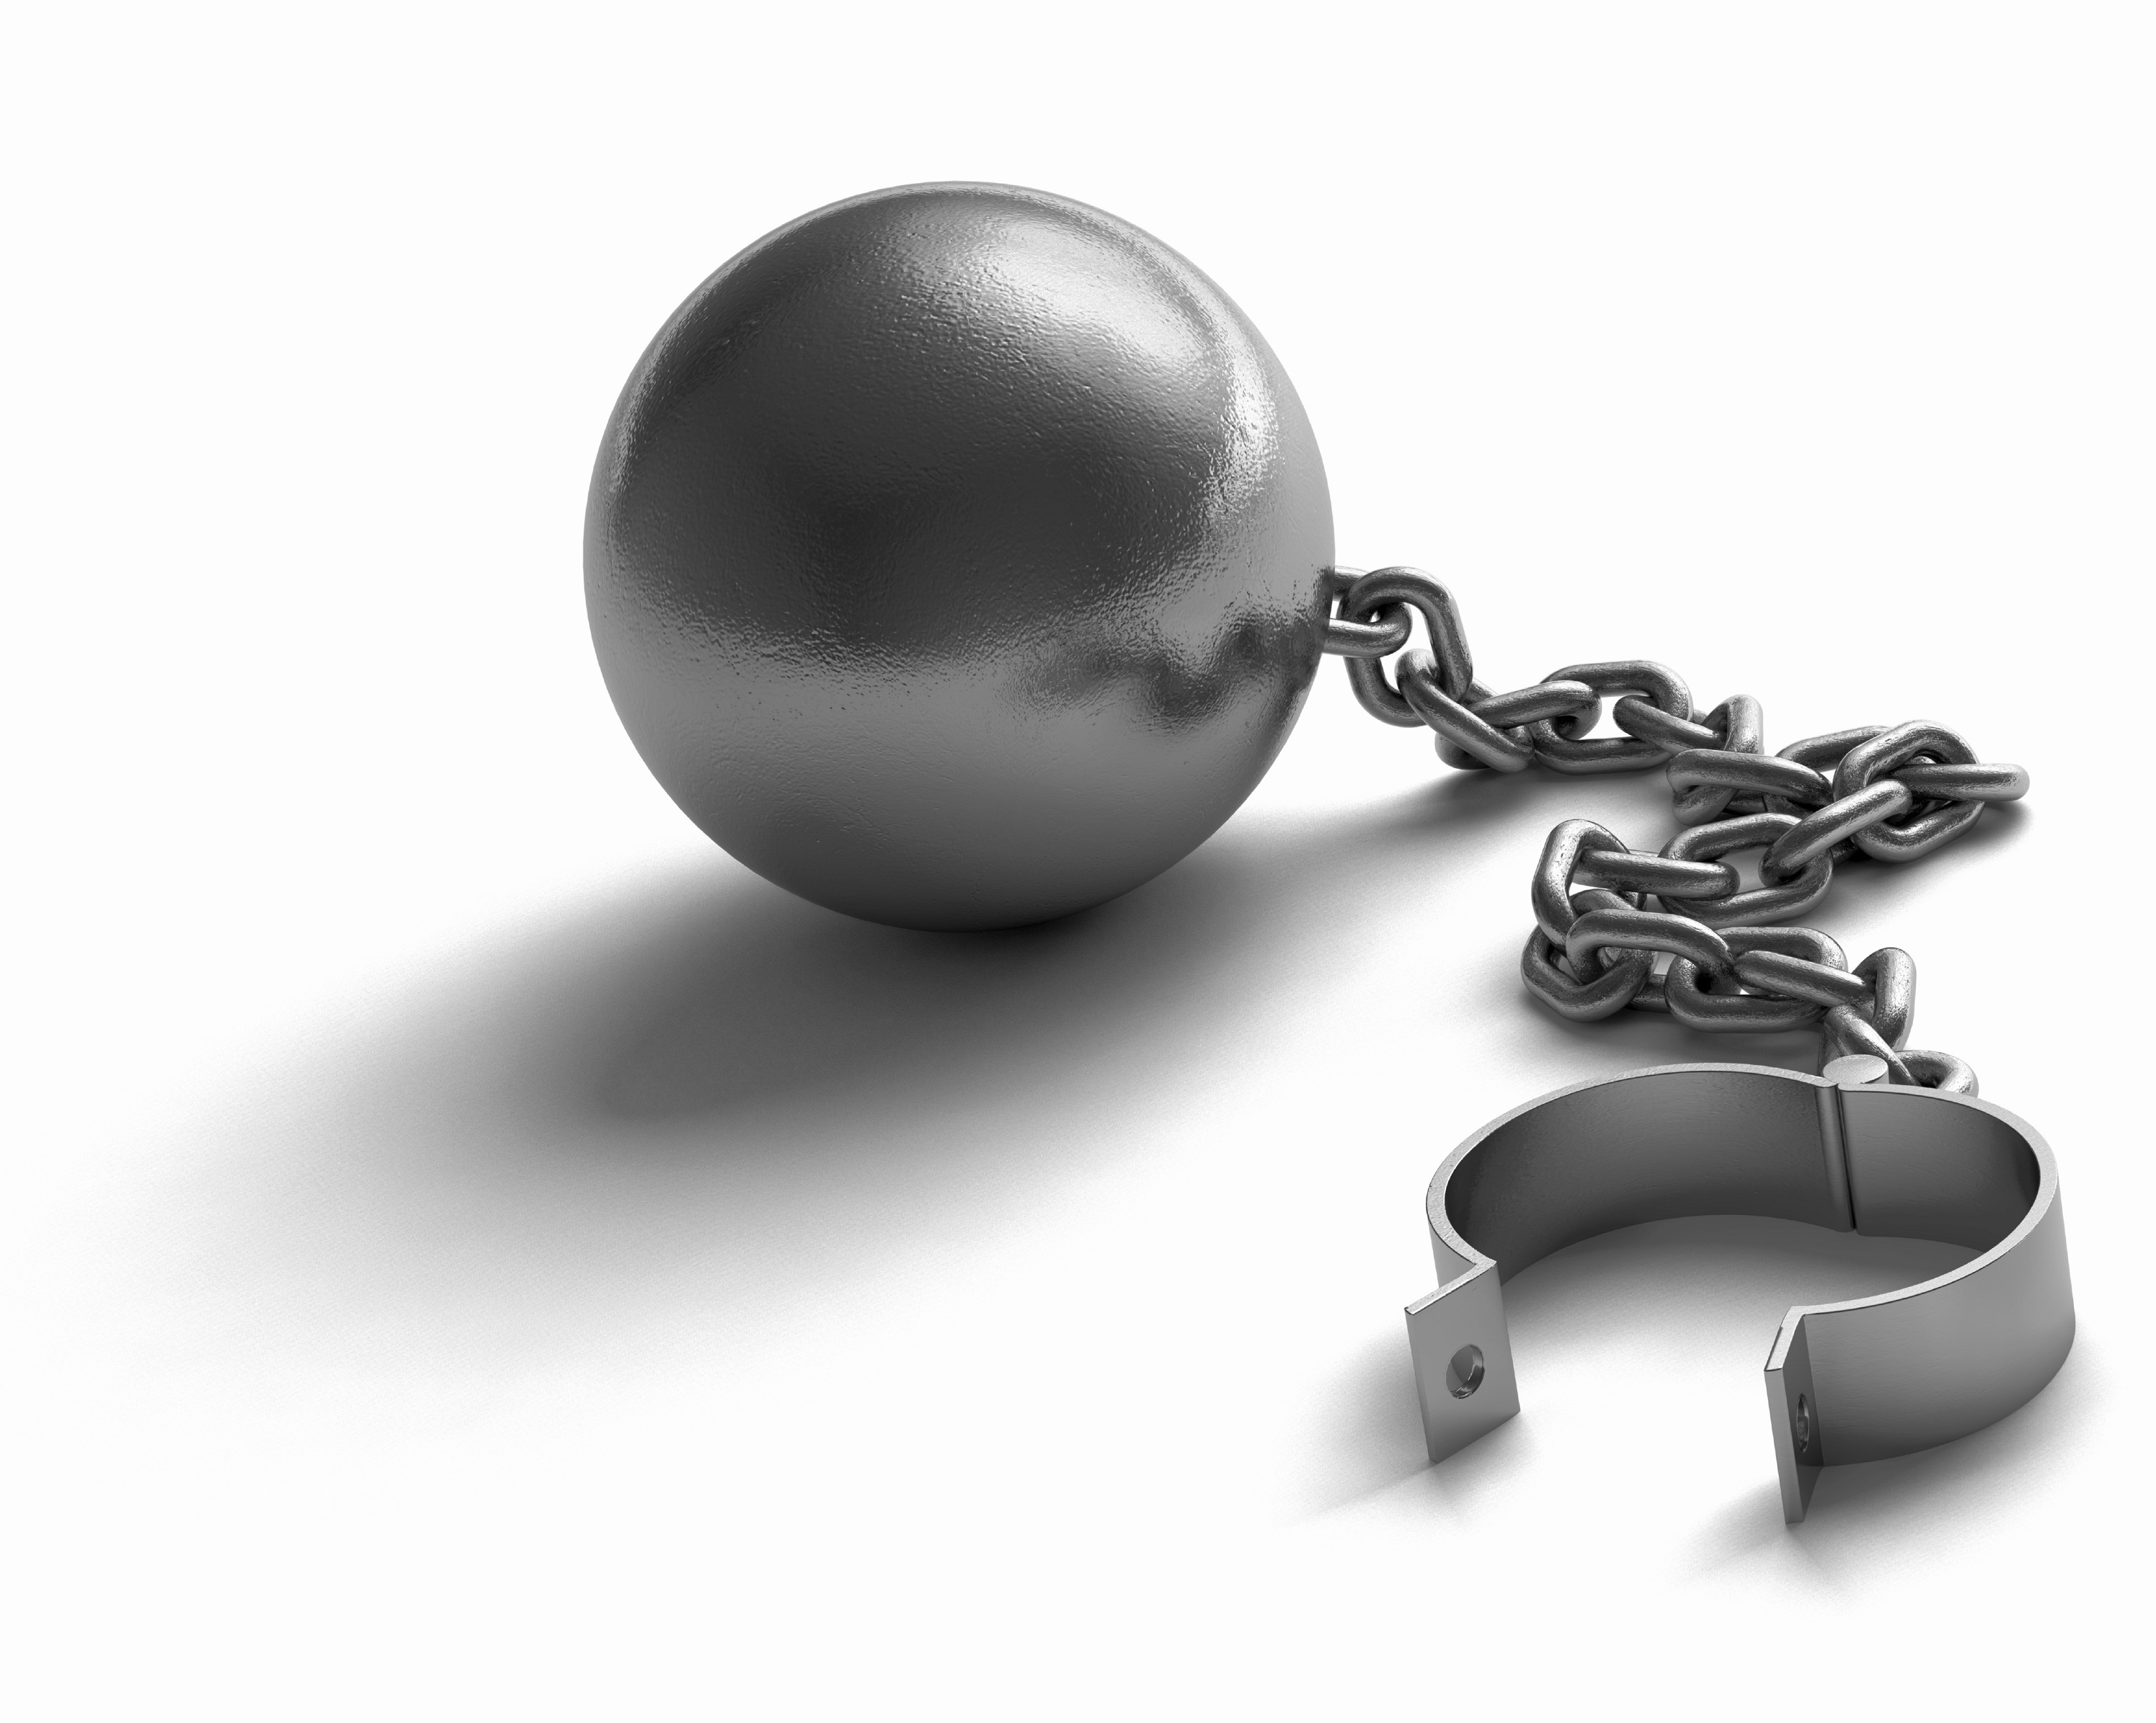 ball-and-chain-2624325.jpg